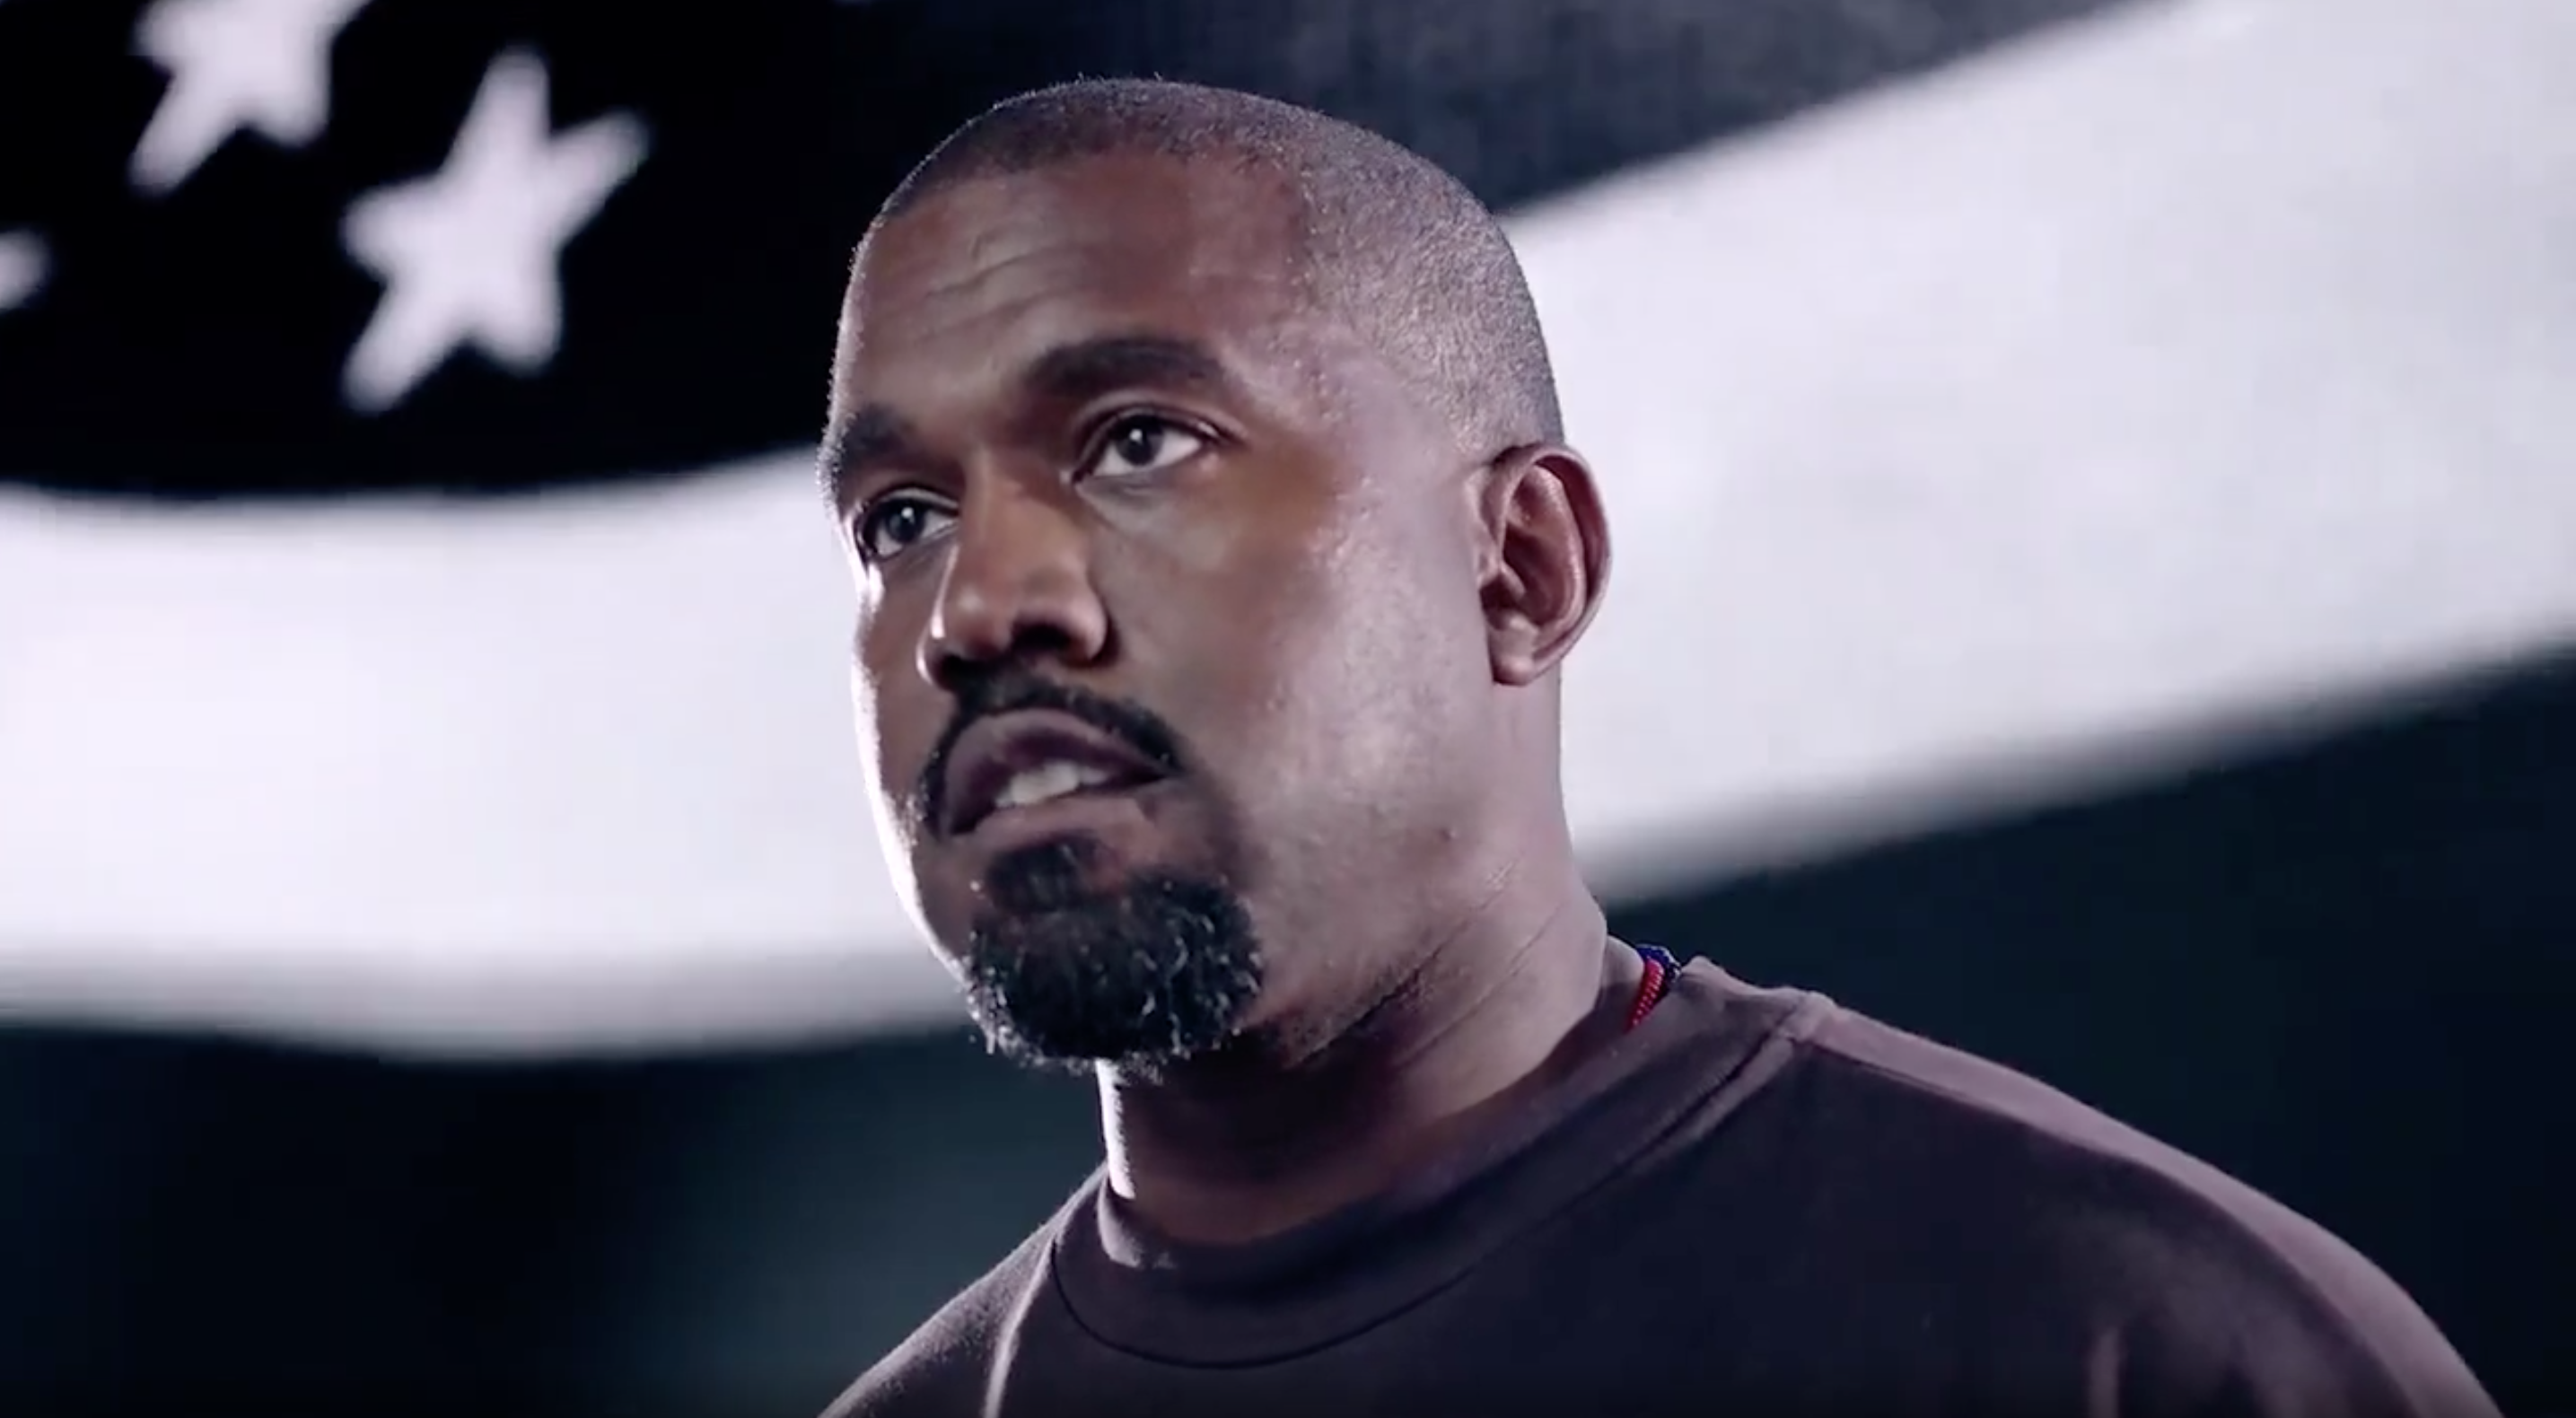 Kanye West Reportedly Went to DMX's Memorial With New Bae and Kim Kardashian is 'Fine' With Their Relationship